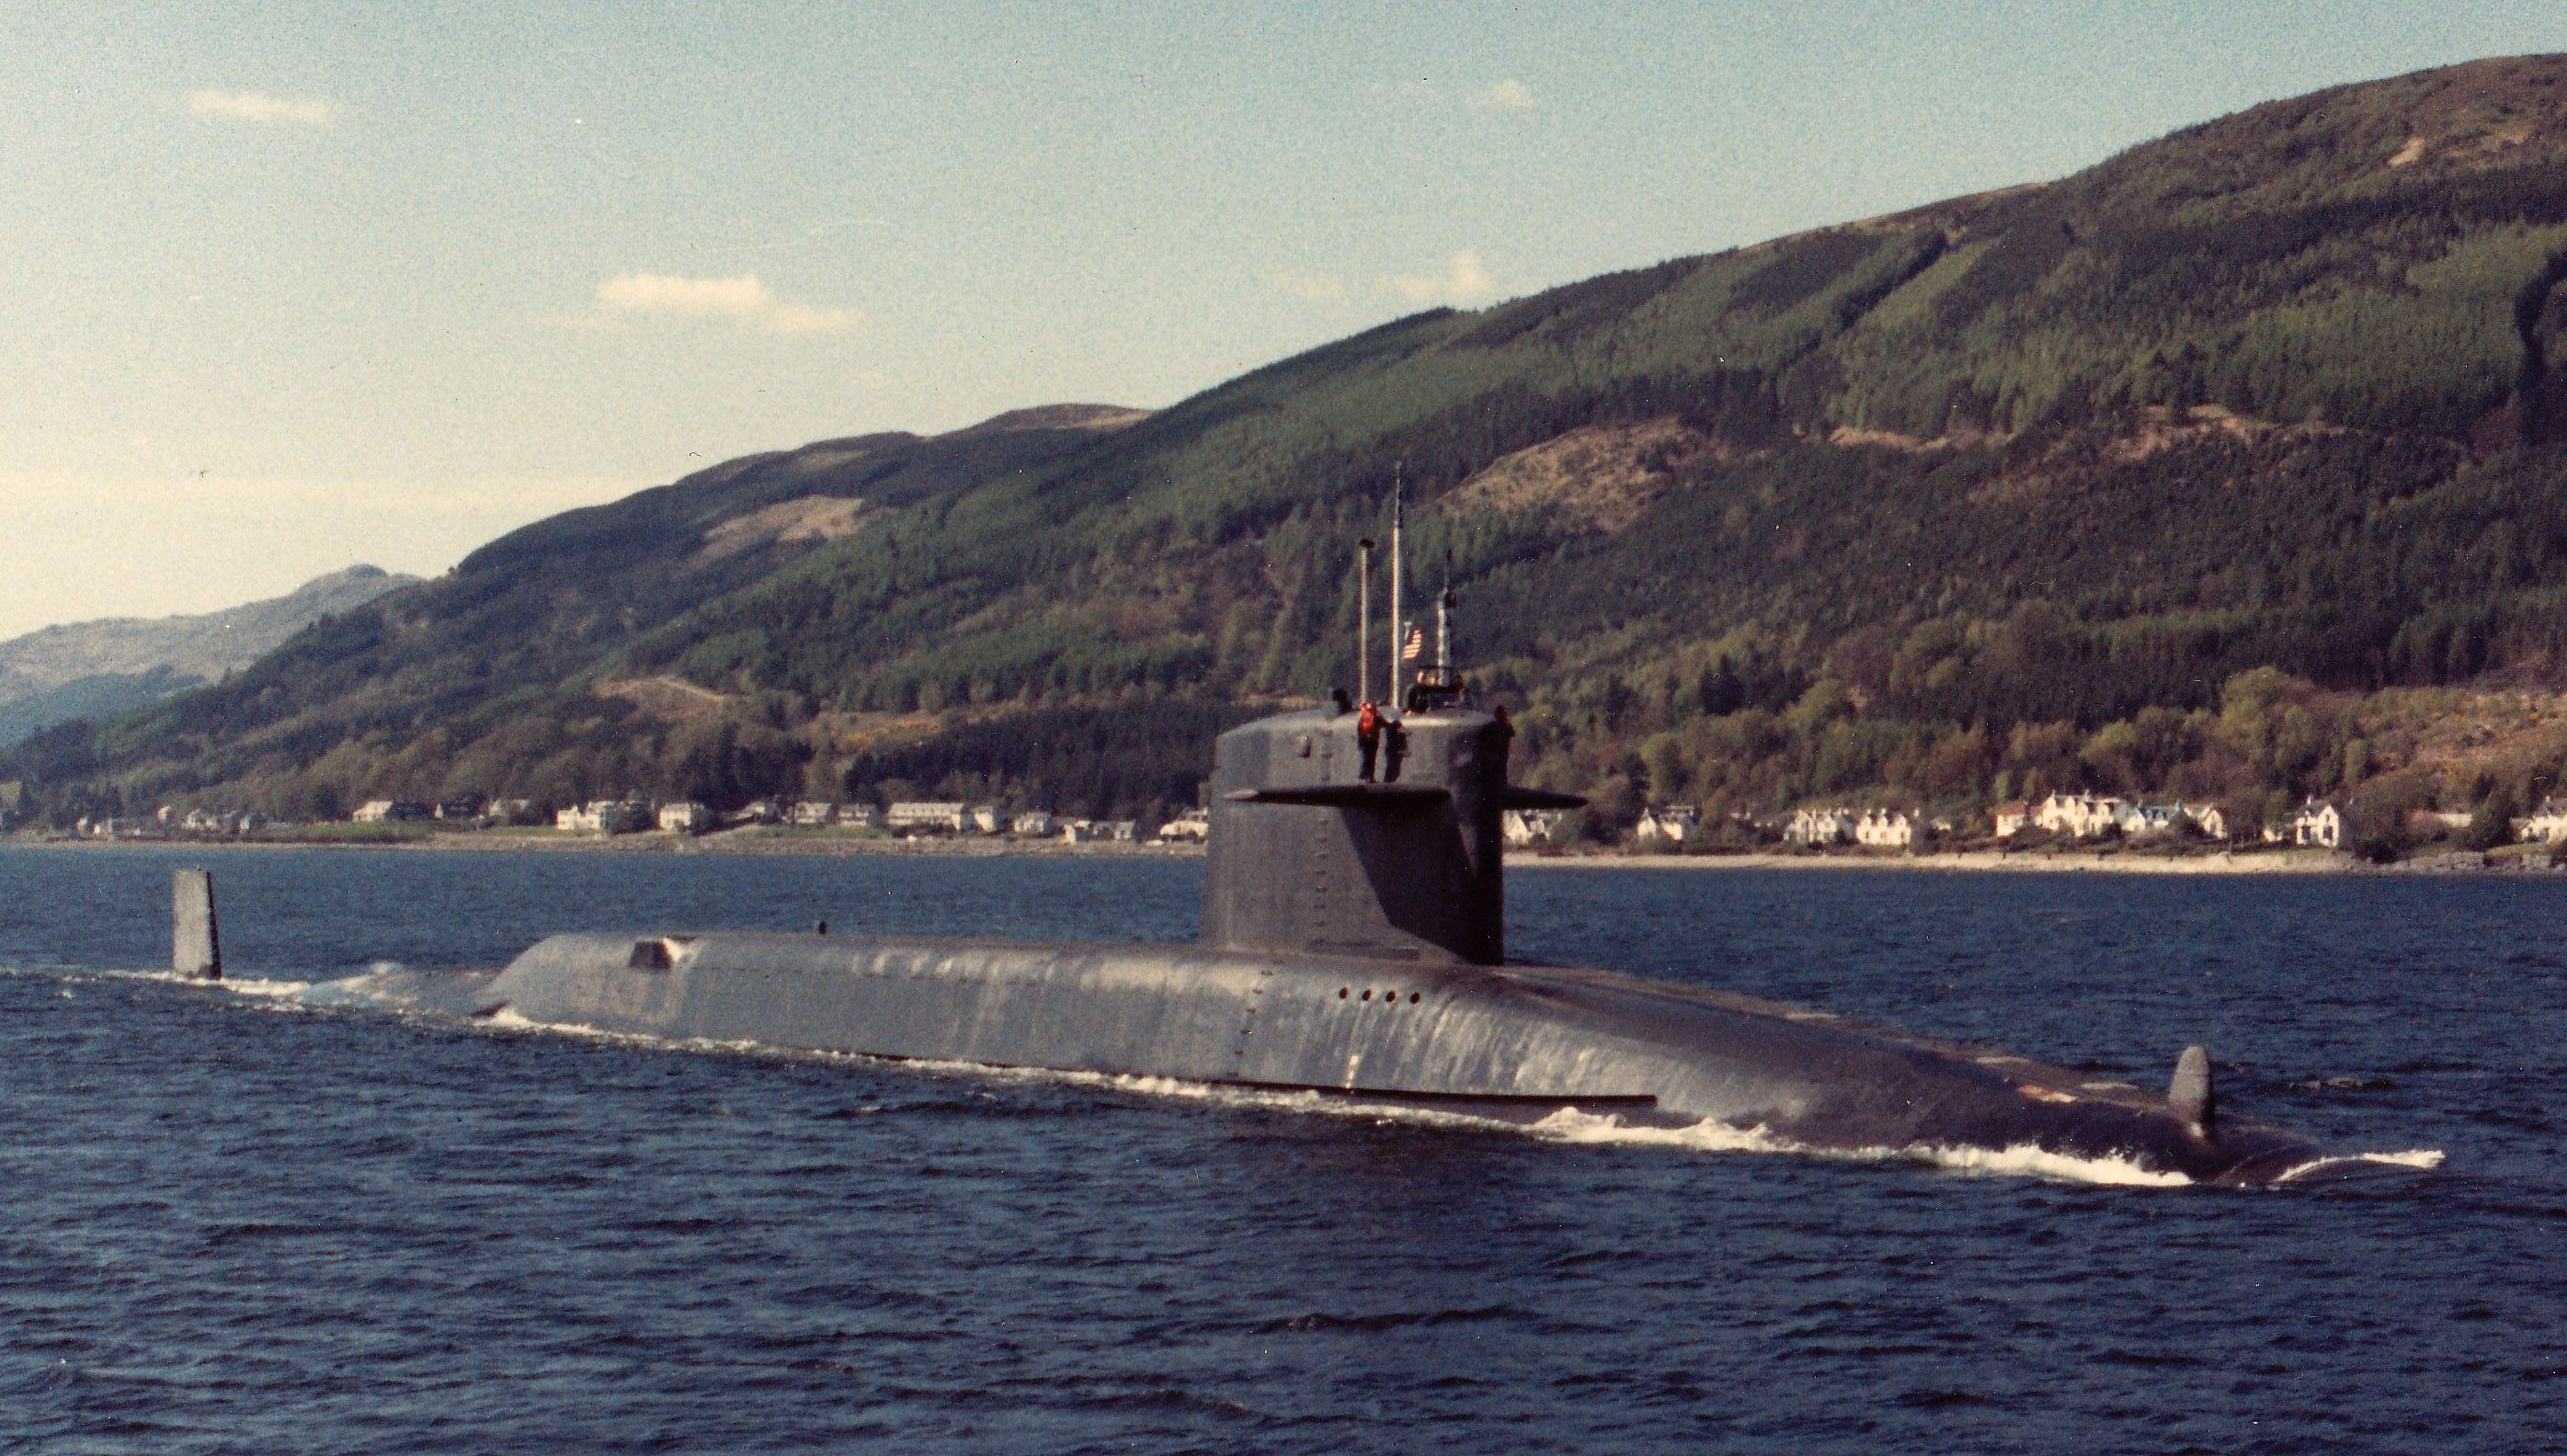 ssbn-631 us grant leaving holy loch in 1991. one of the